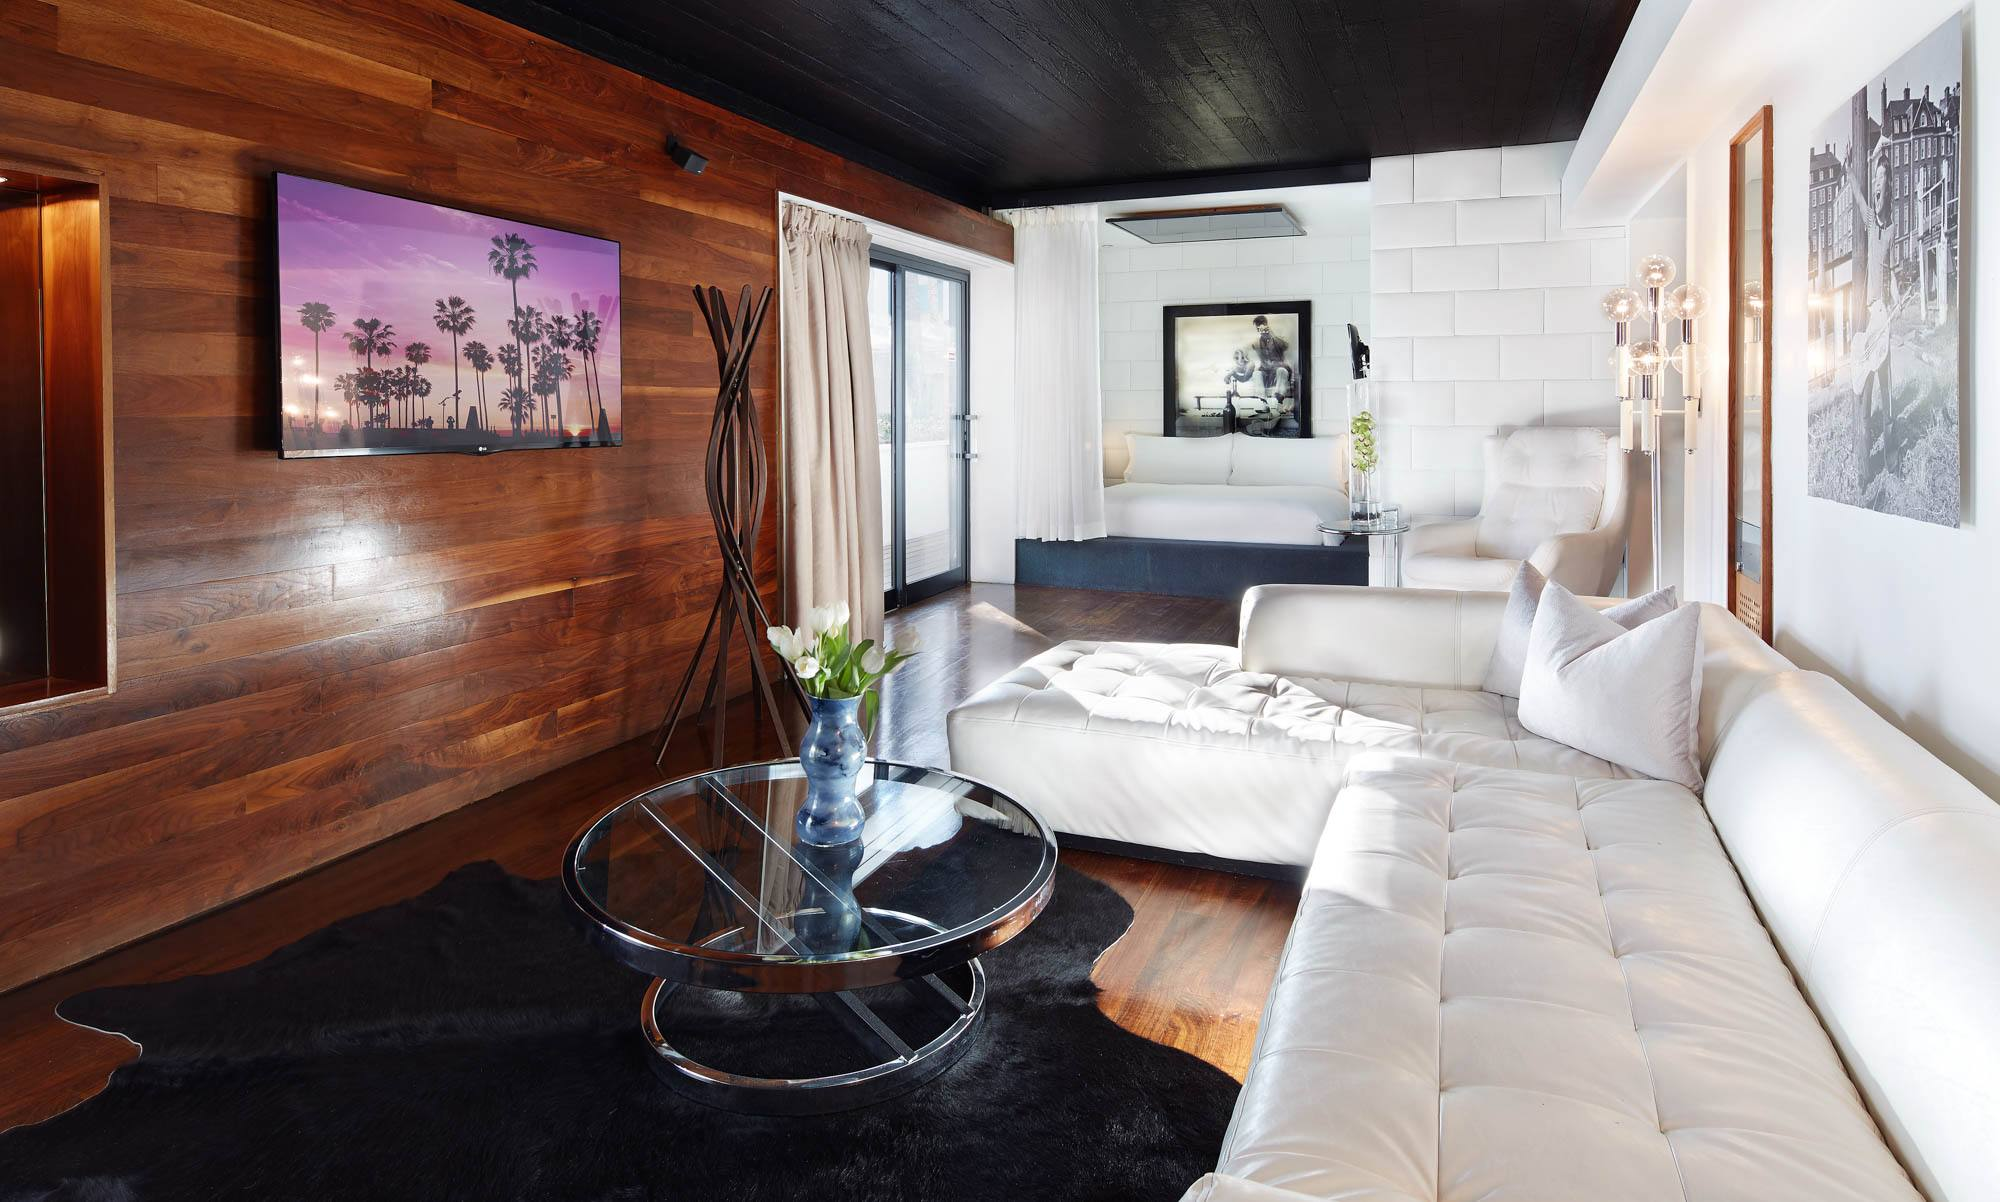 Interior photo of the Hollywood Roosevelt Marilyn Monroe Suite with wood walls and white couch